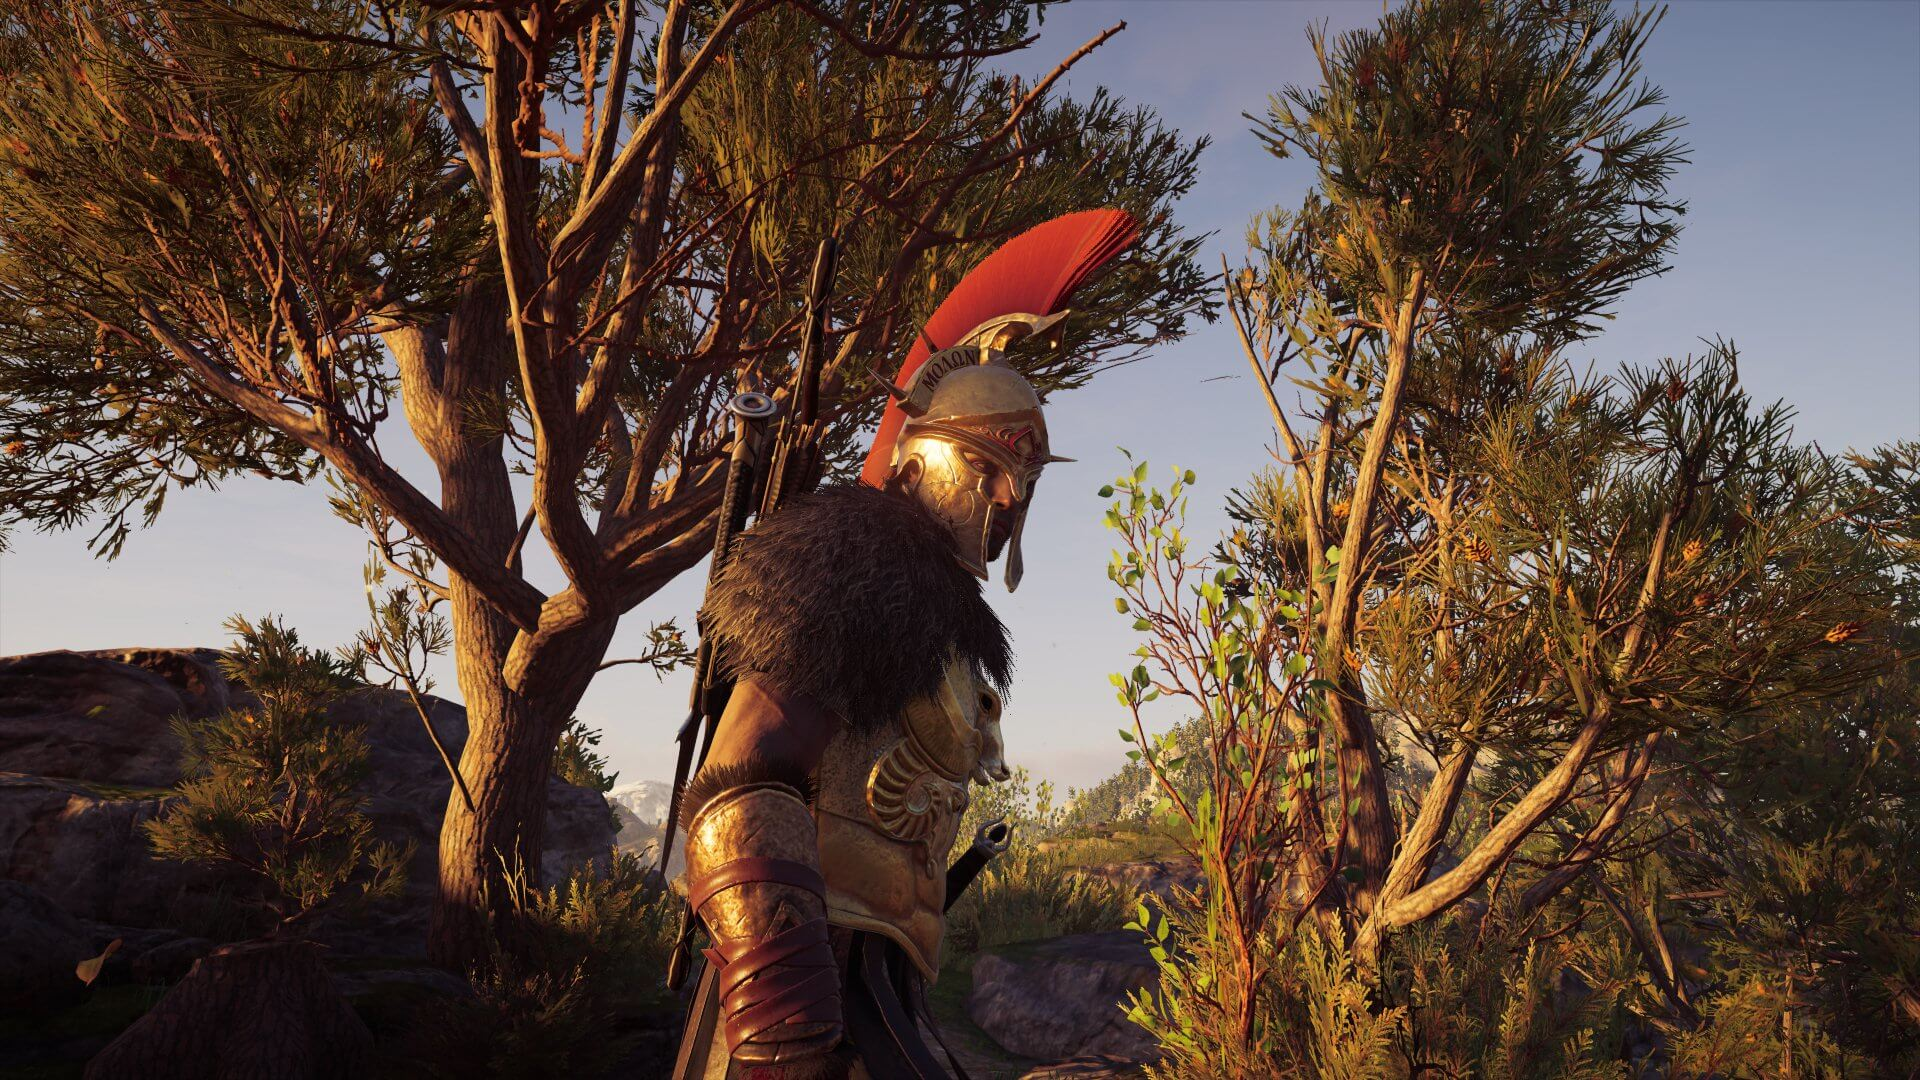 Assassins Creed® Odyssey  3 - Assassin's Creed Odyssey: confira o guia de dicas e truques do game